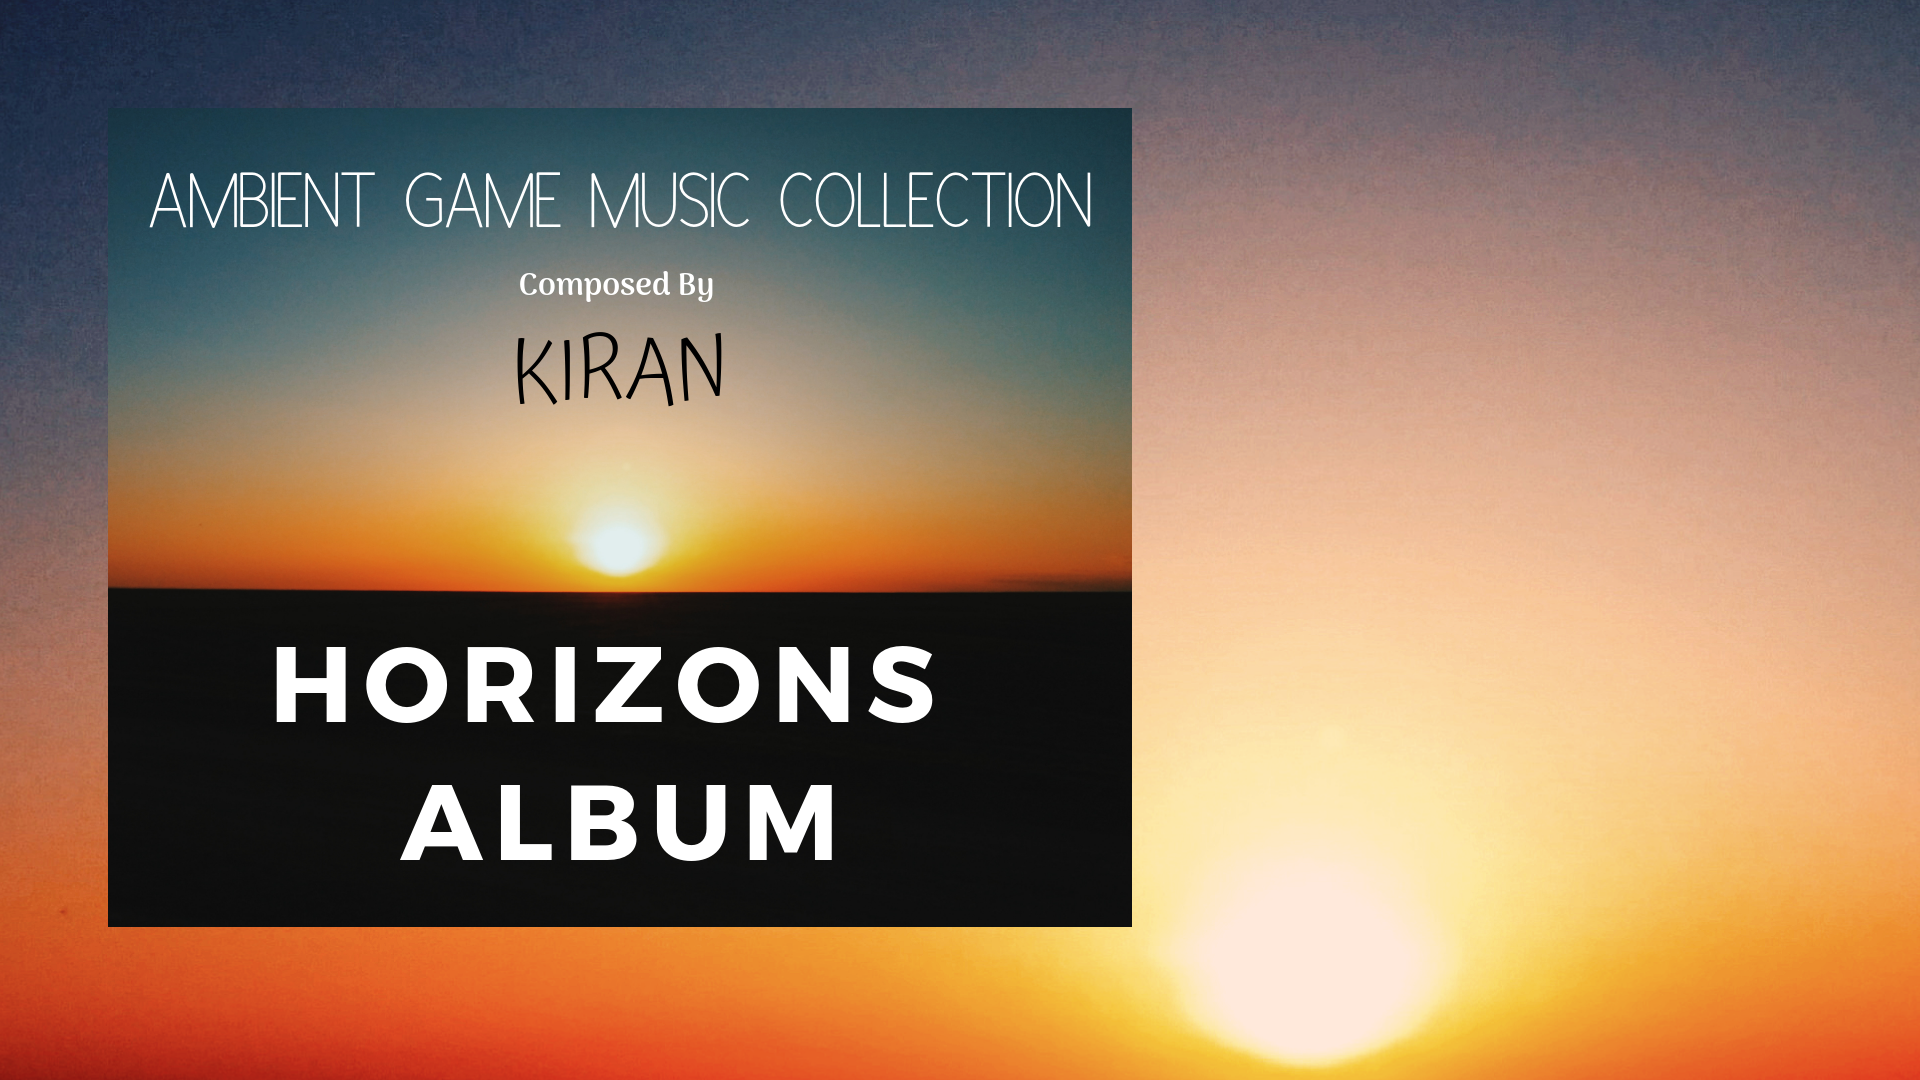 First Game Music Album